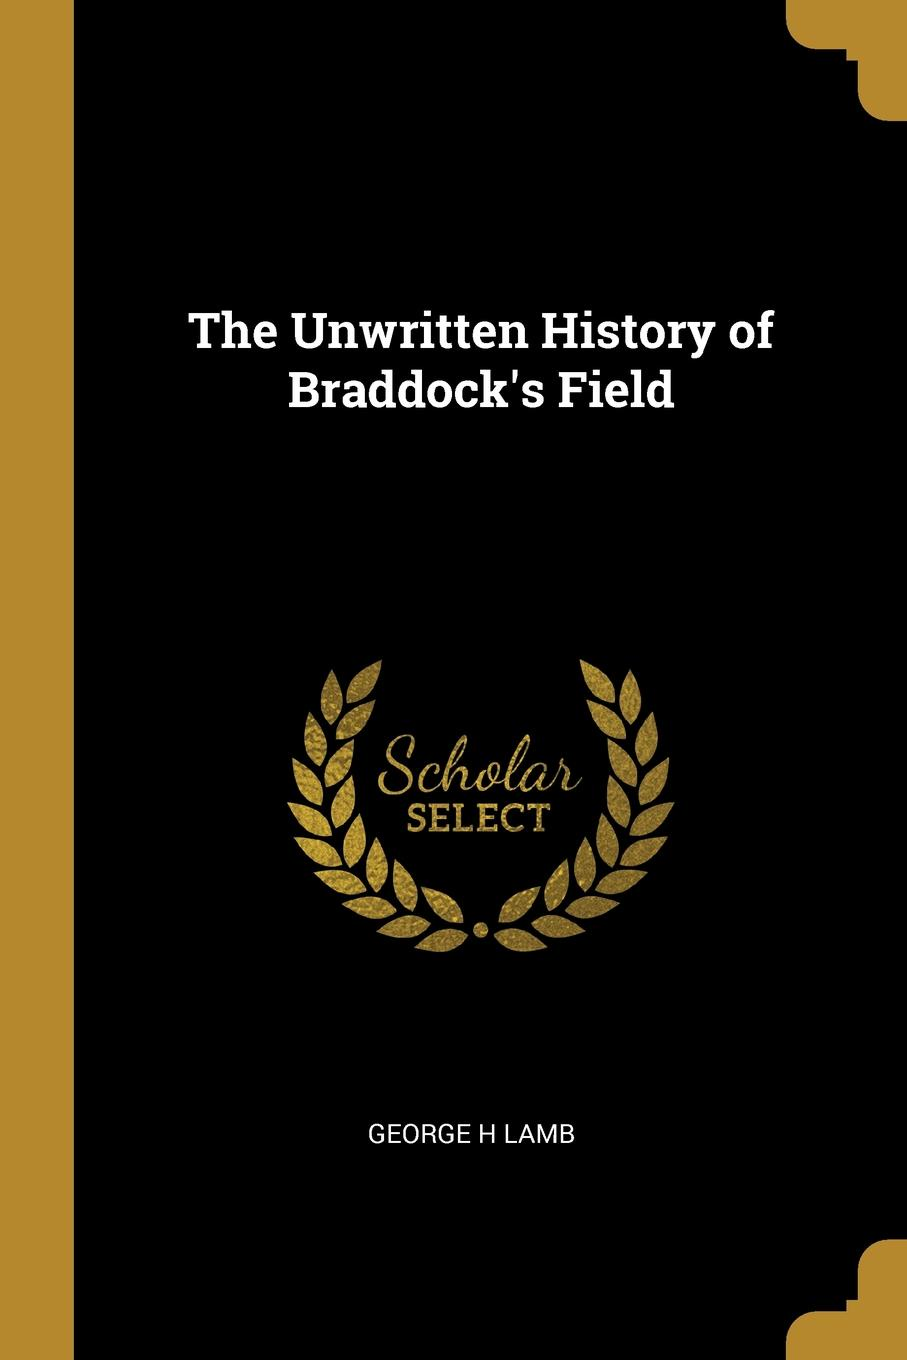 George H Lamb. The Unwritten History of Braddock.s Field